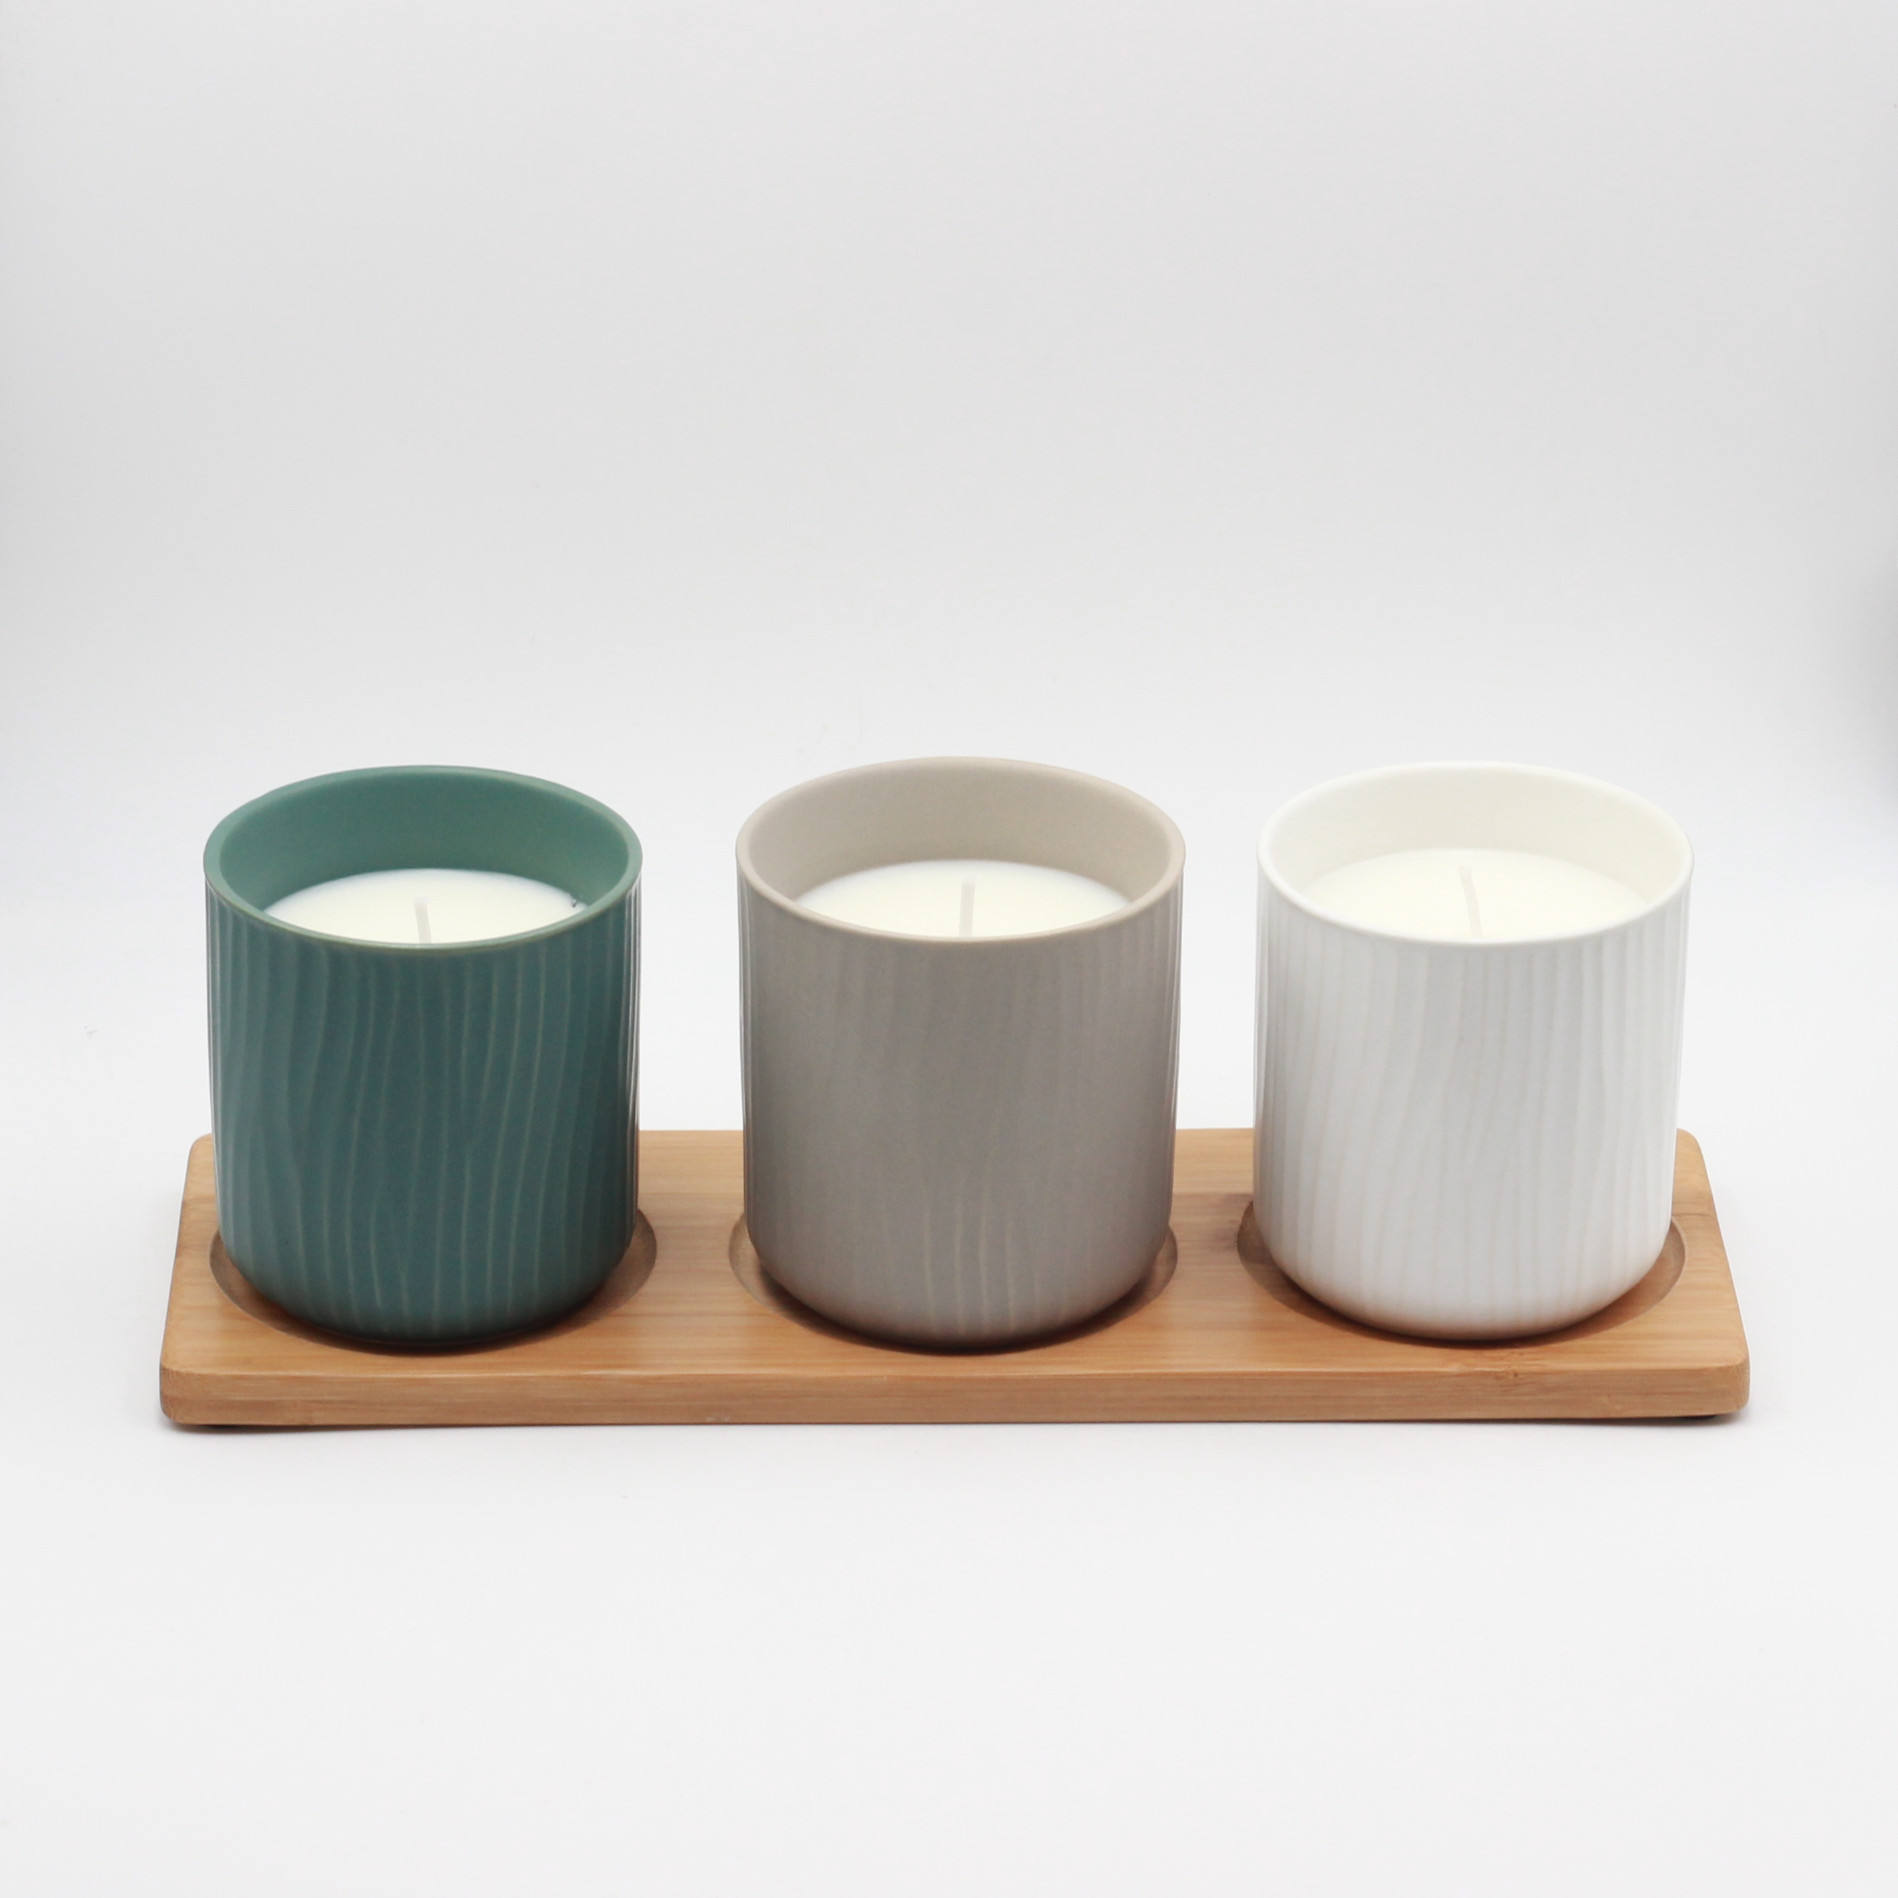 6 oz luxury Ceramic 컵 candles in sets